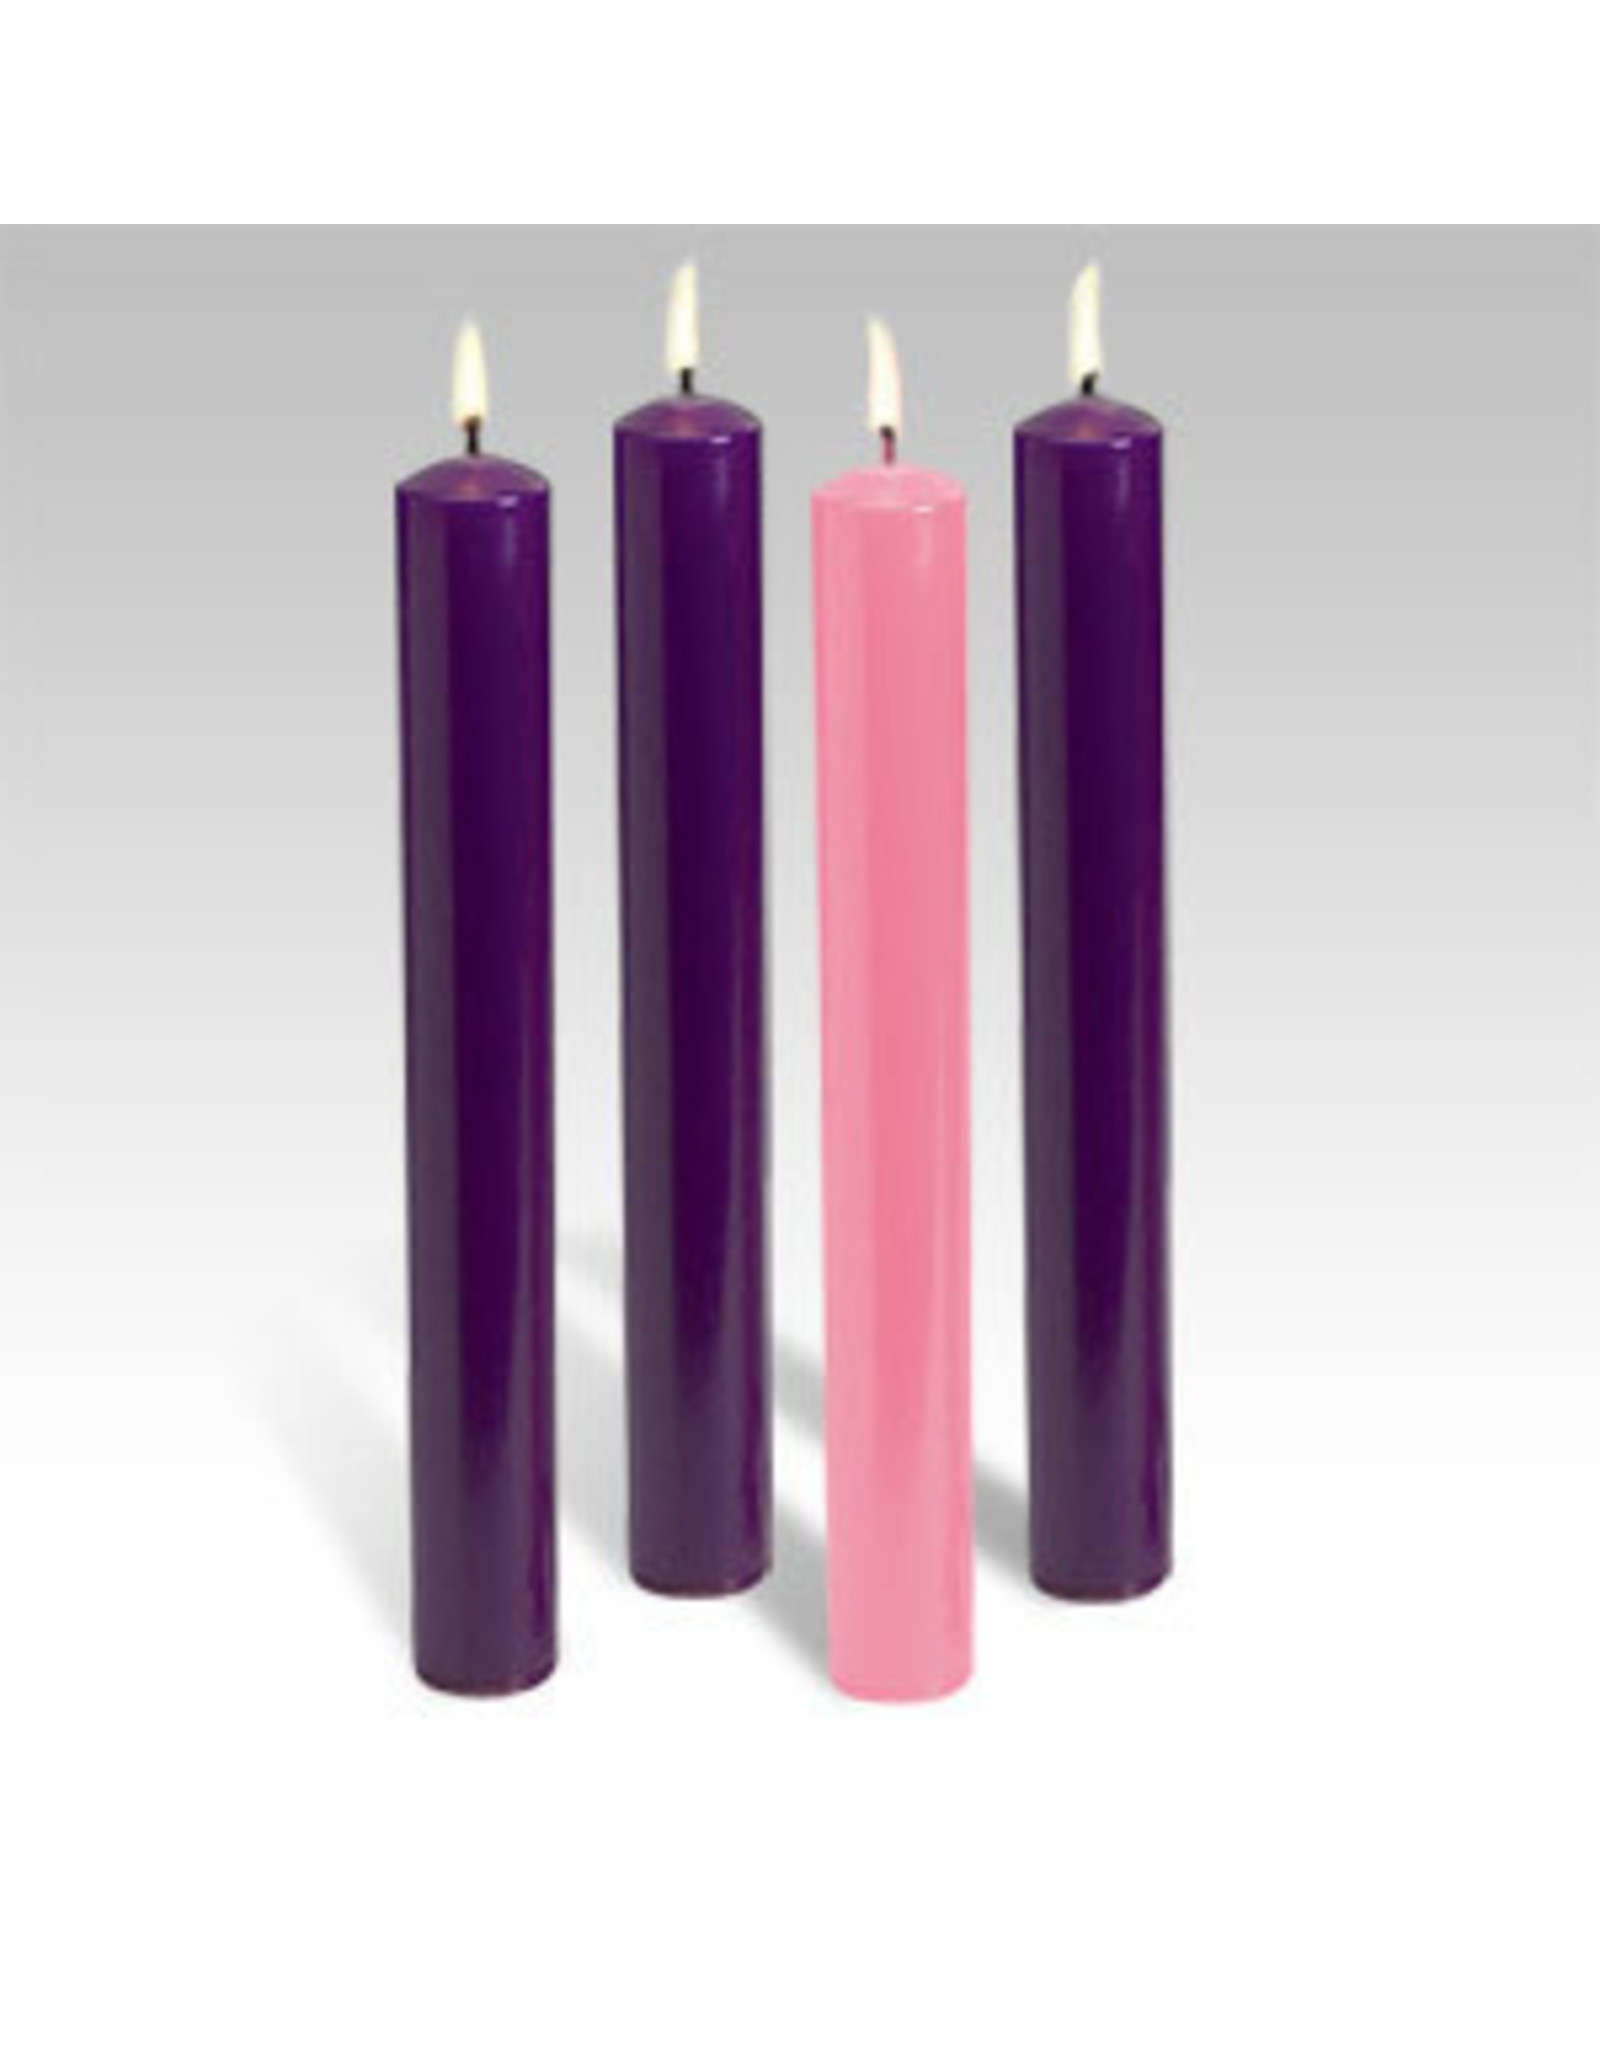 Advent Tapers 51% Beeswax (3 purple, 1 pink)